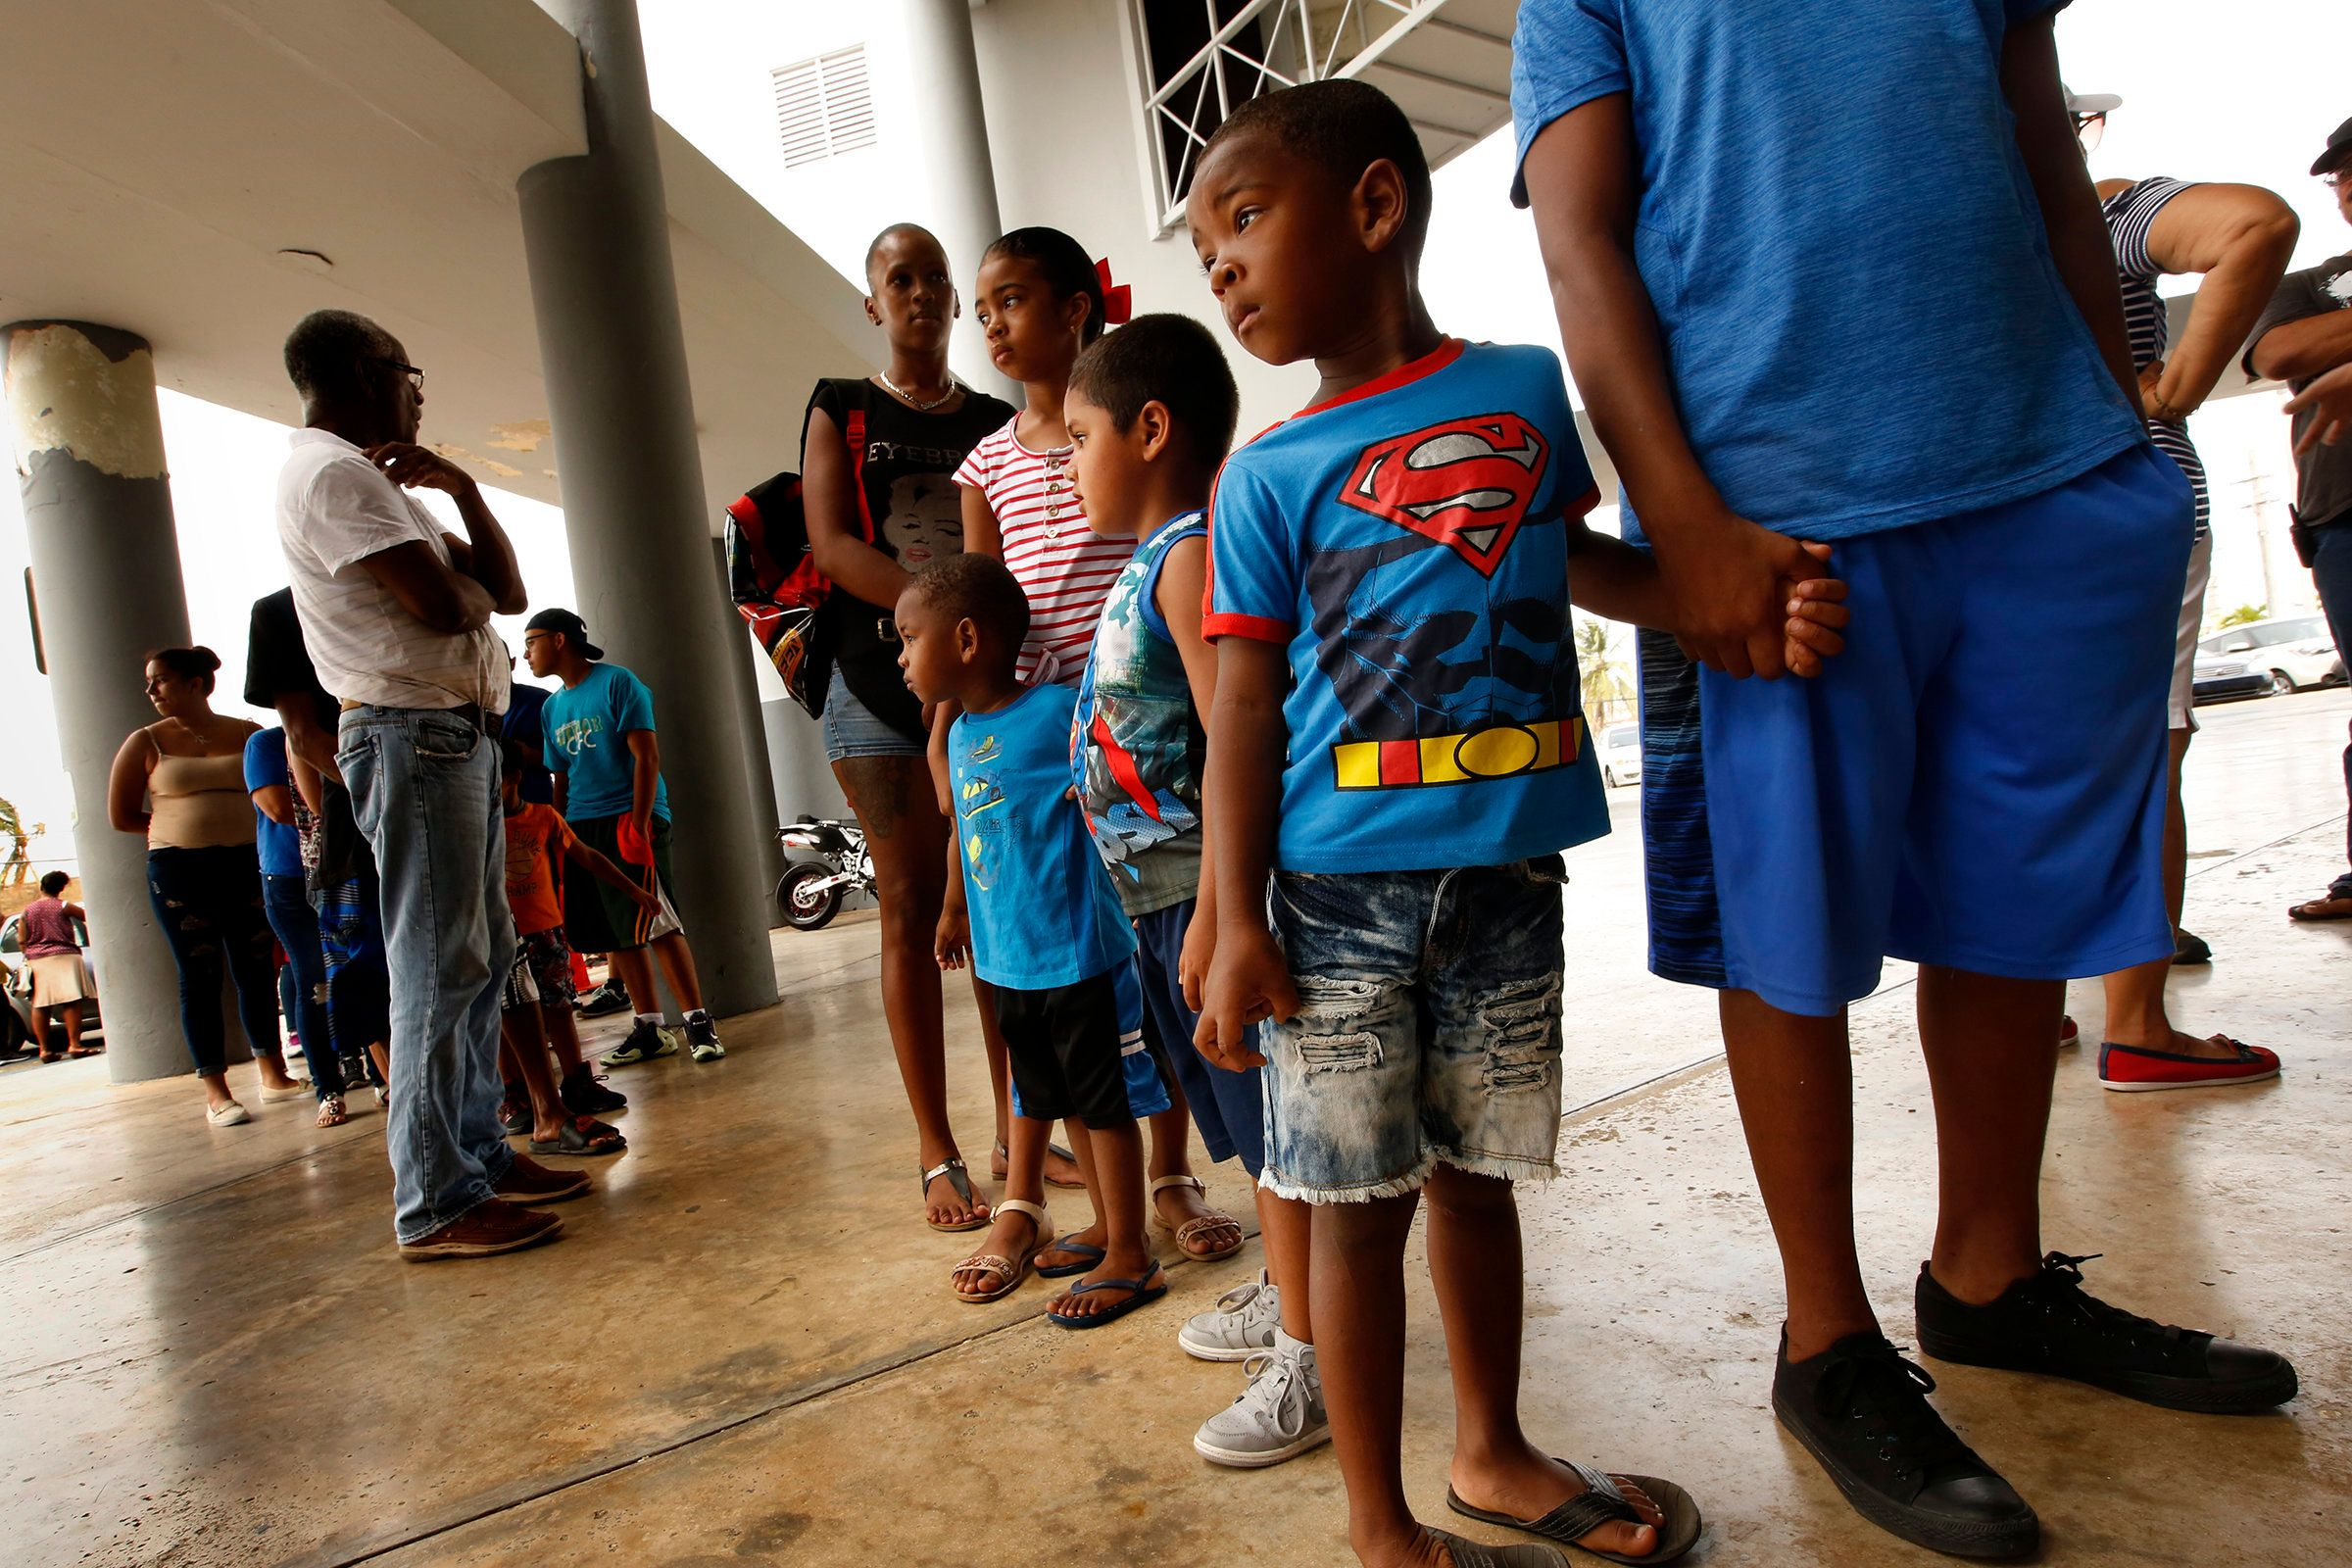 Members of the Pisaro family of four children, wait in line for FEMA food distribution in the town of Rio Grande on Sep